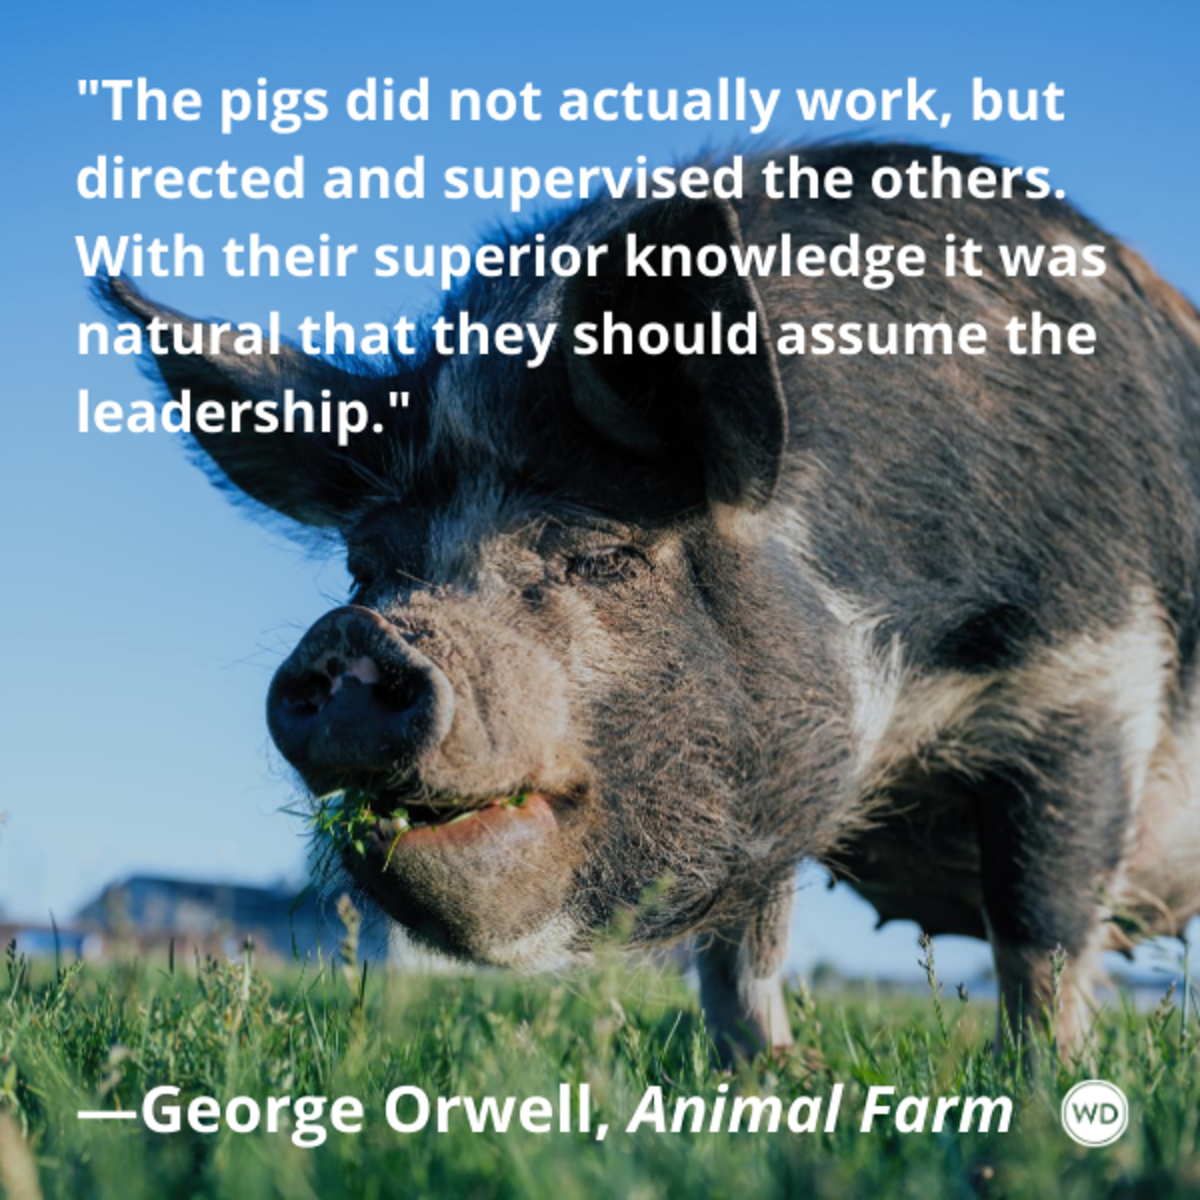 animal_farm_by_george_orwell_quotes_the_pigs_did_not_actually_work_but_directed_and_supervised_the_others